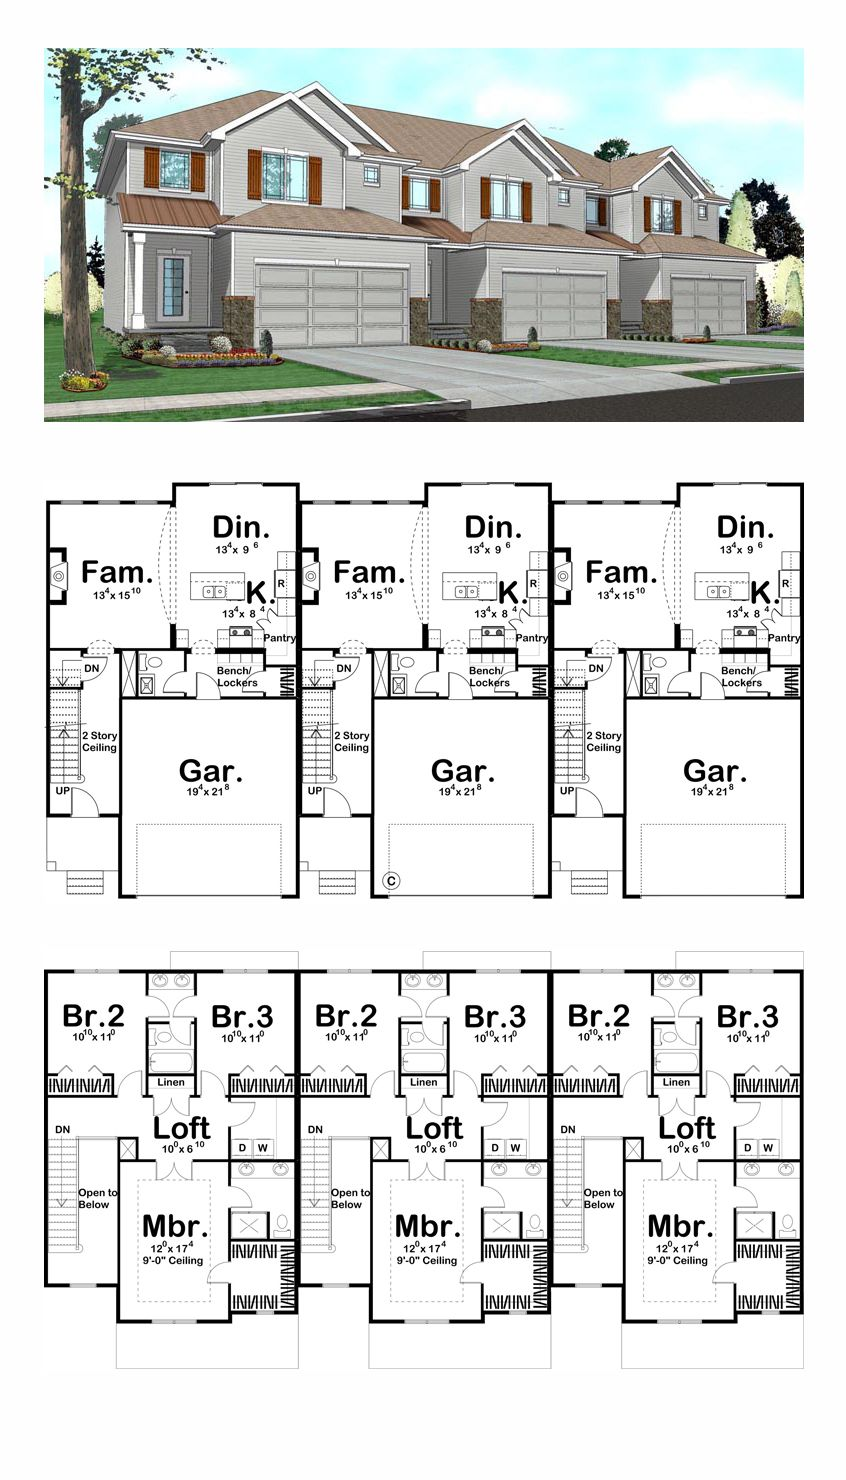 Three unit triplex plan 41141 total living area 4935 sq for 4 unit condo plans